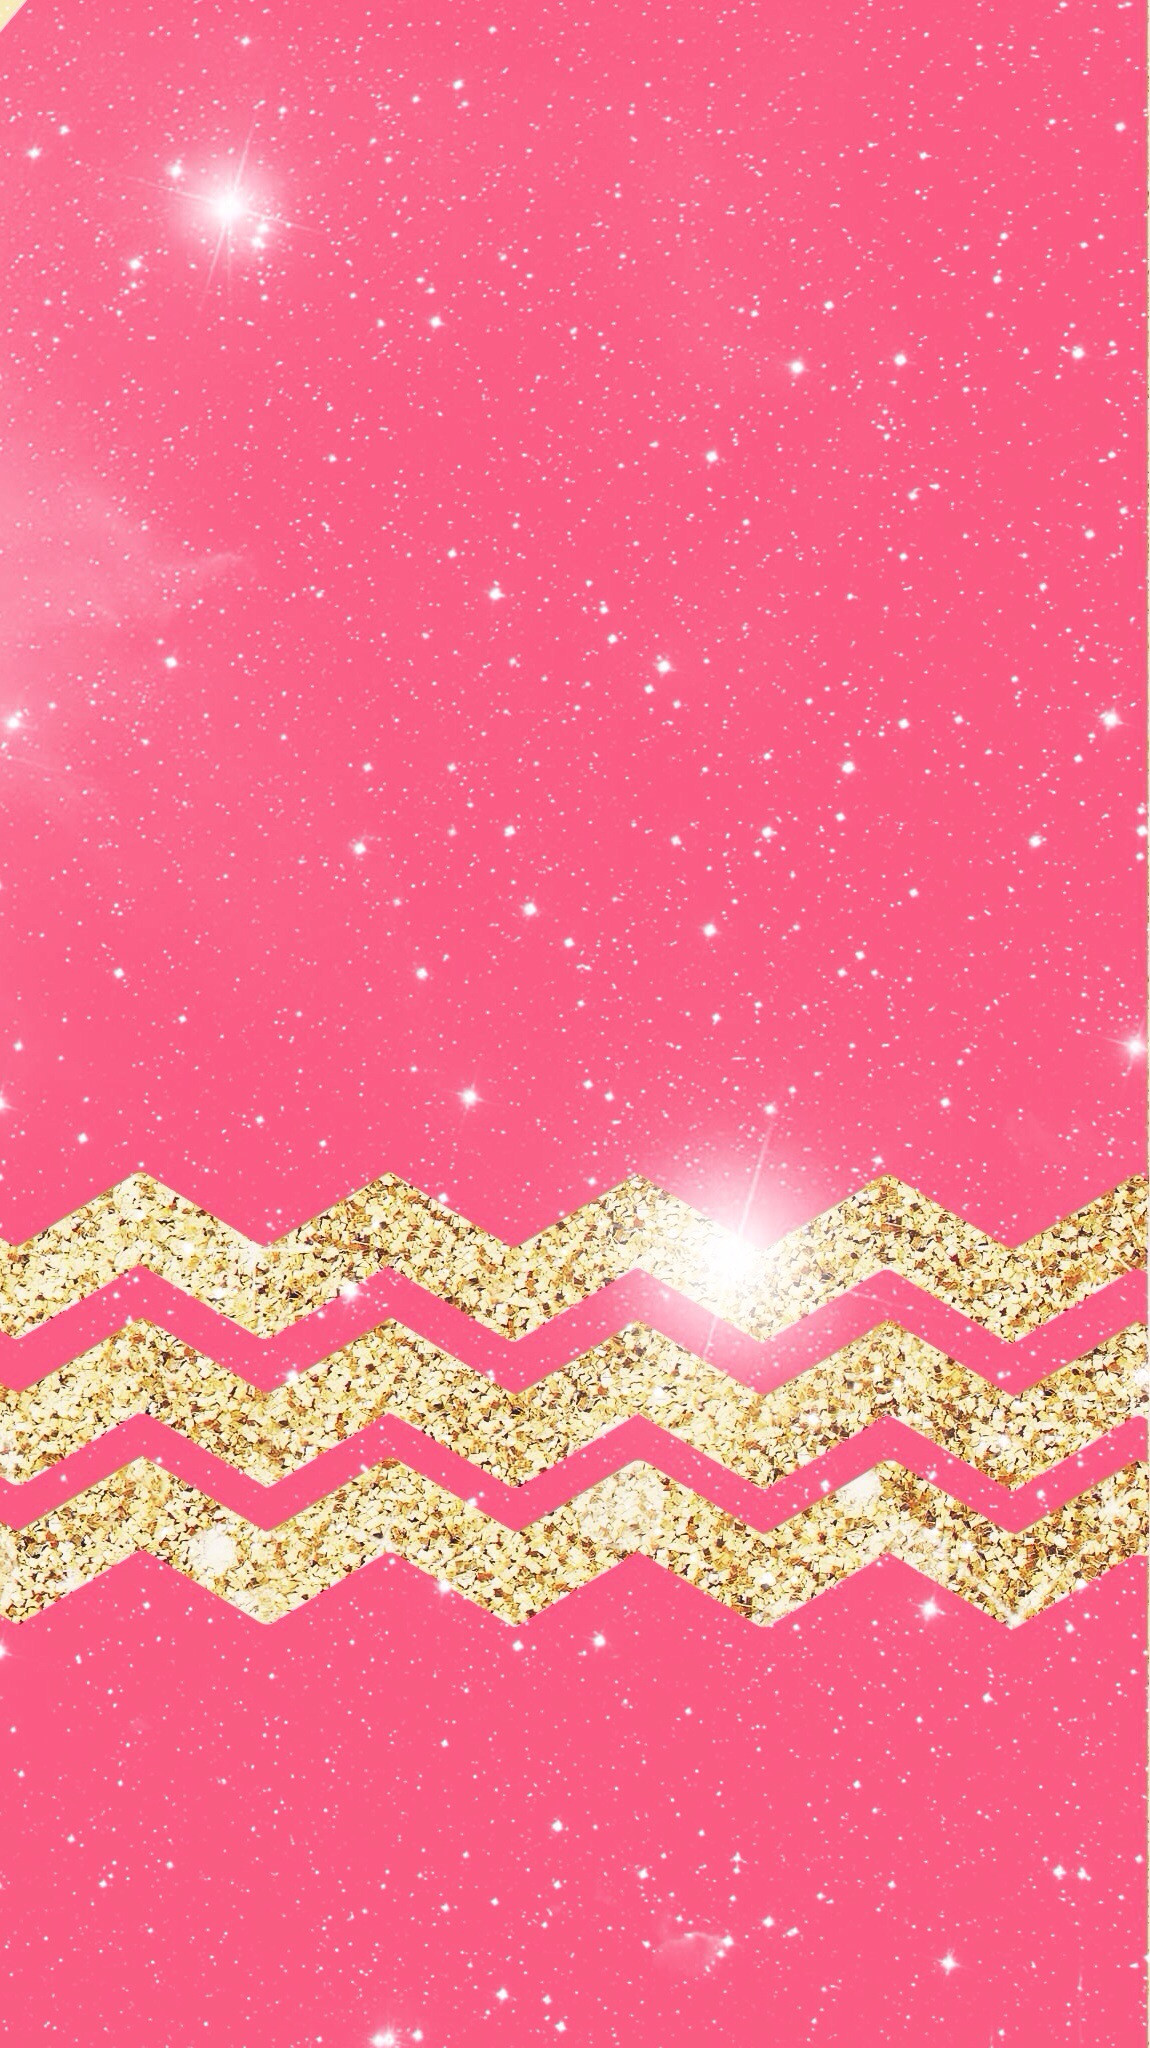 iPhone wallpaper pink and gold